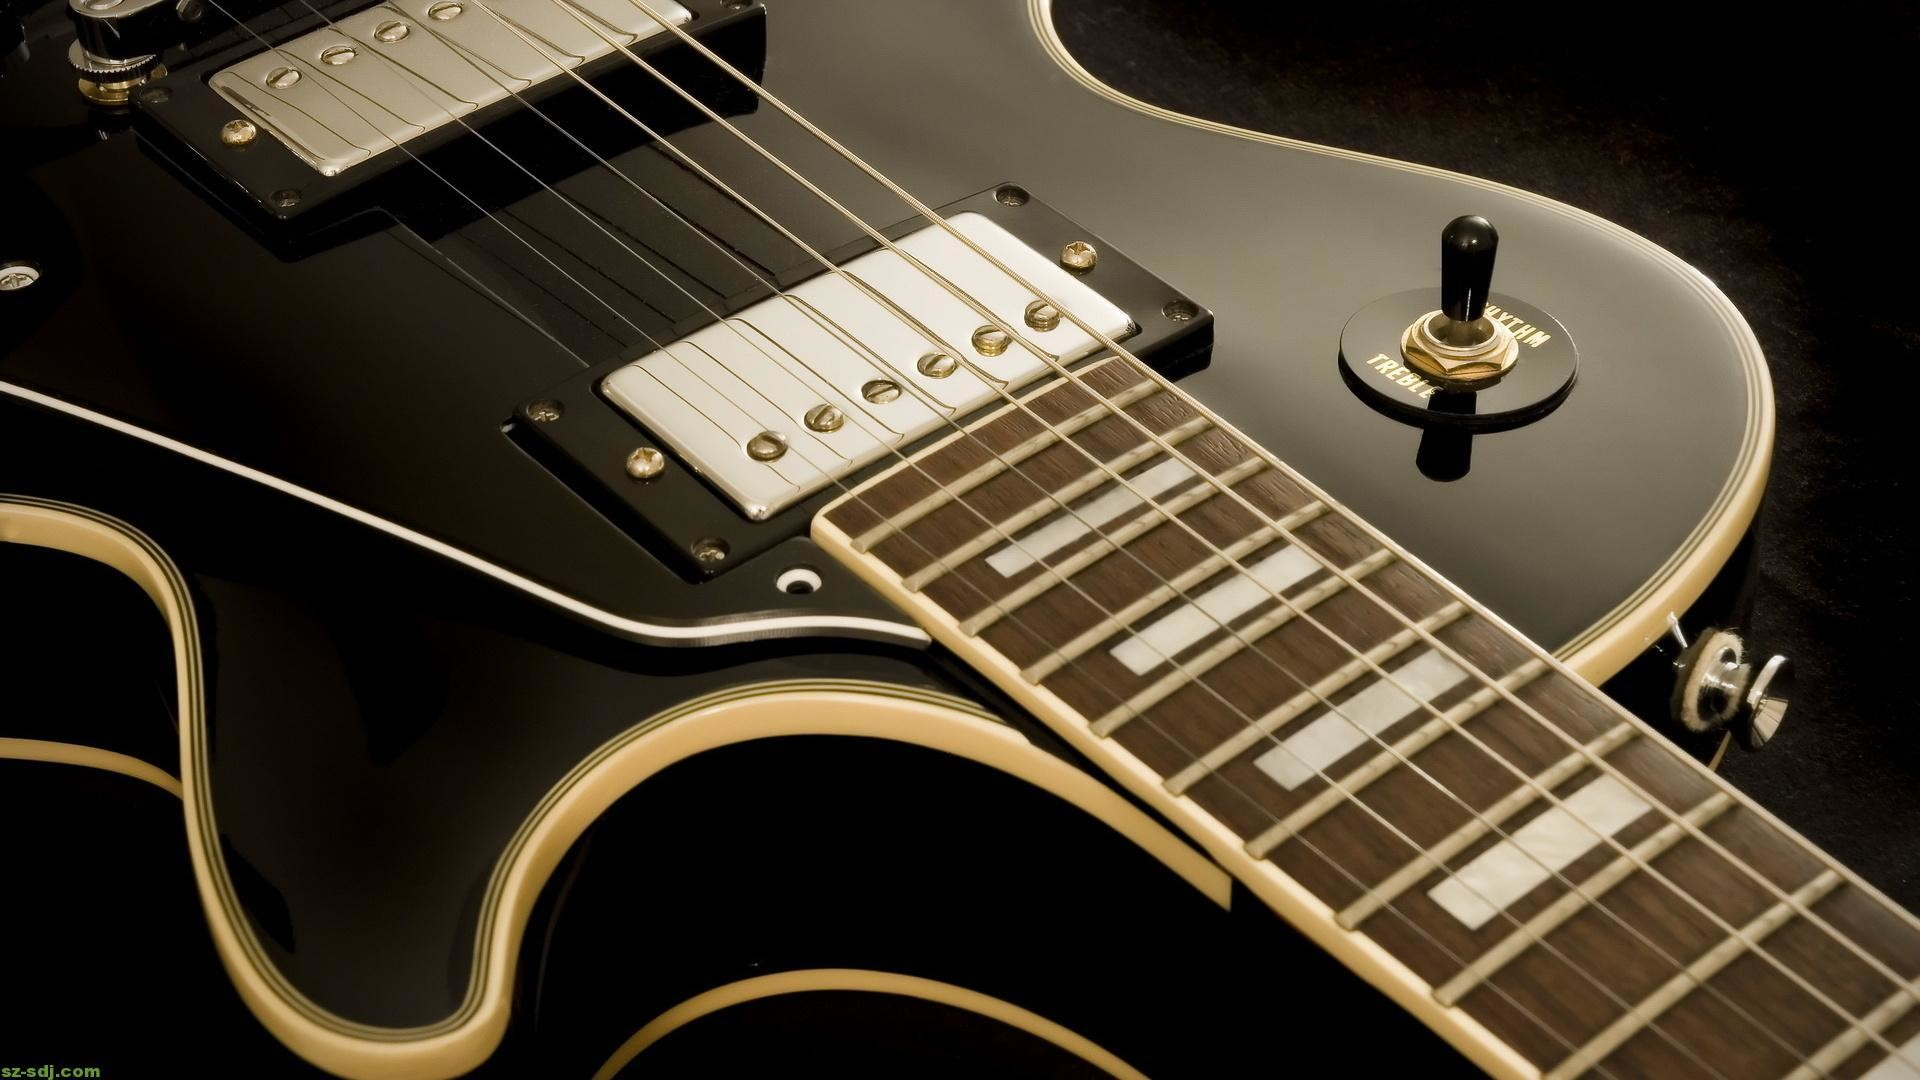 Guitar Wallpapers 1920x1080 Widescreen 74 Images